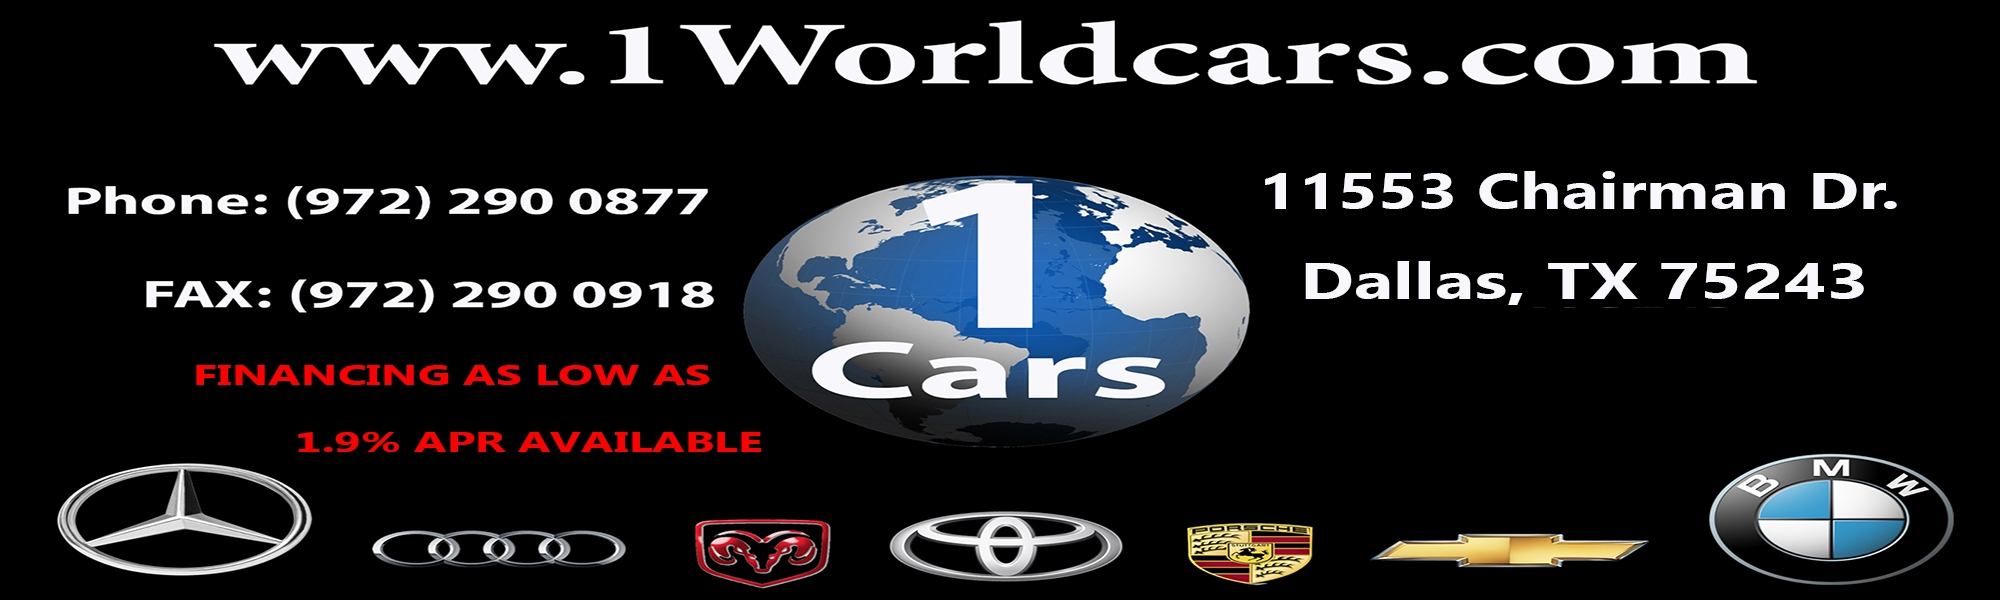 ONE WORLD CARS. 9722900877